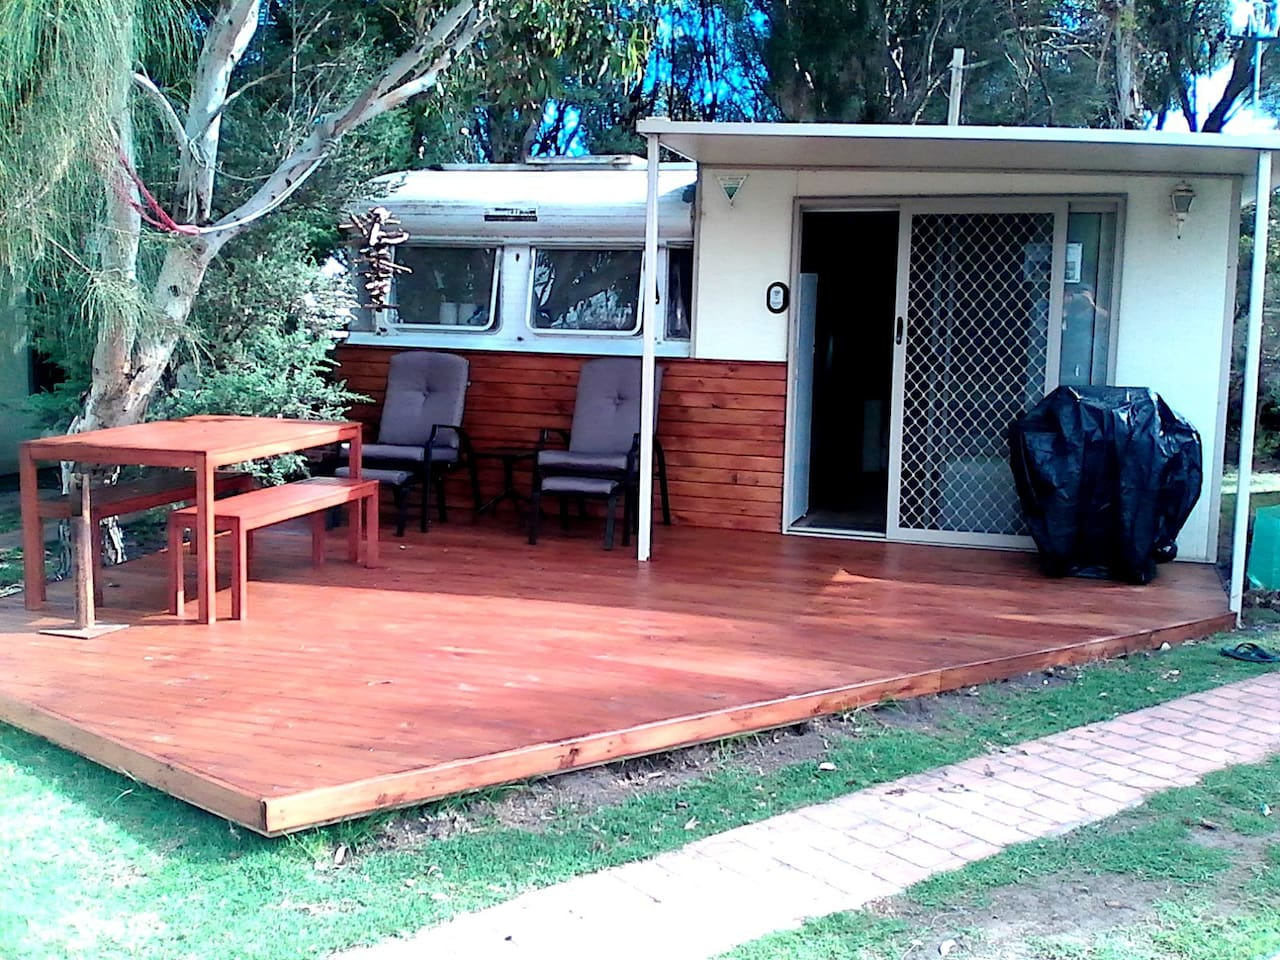 surya marengo holiday park cabins for rent in apollo bay